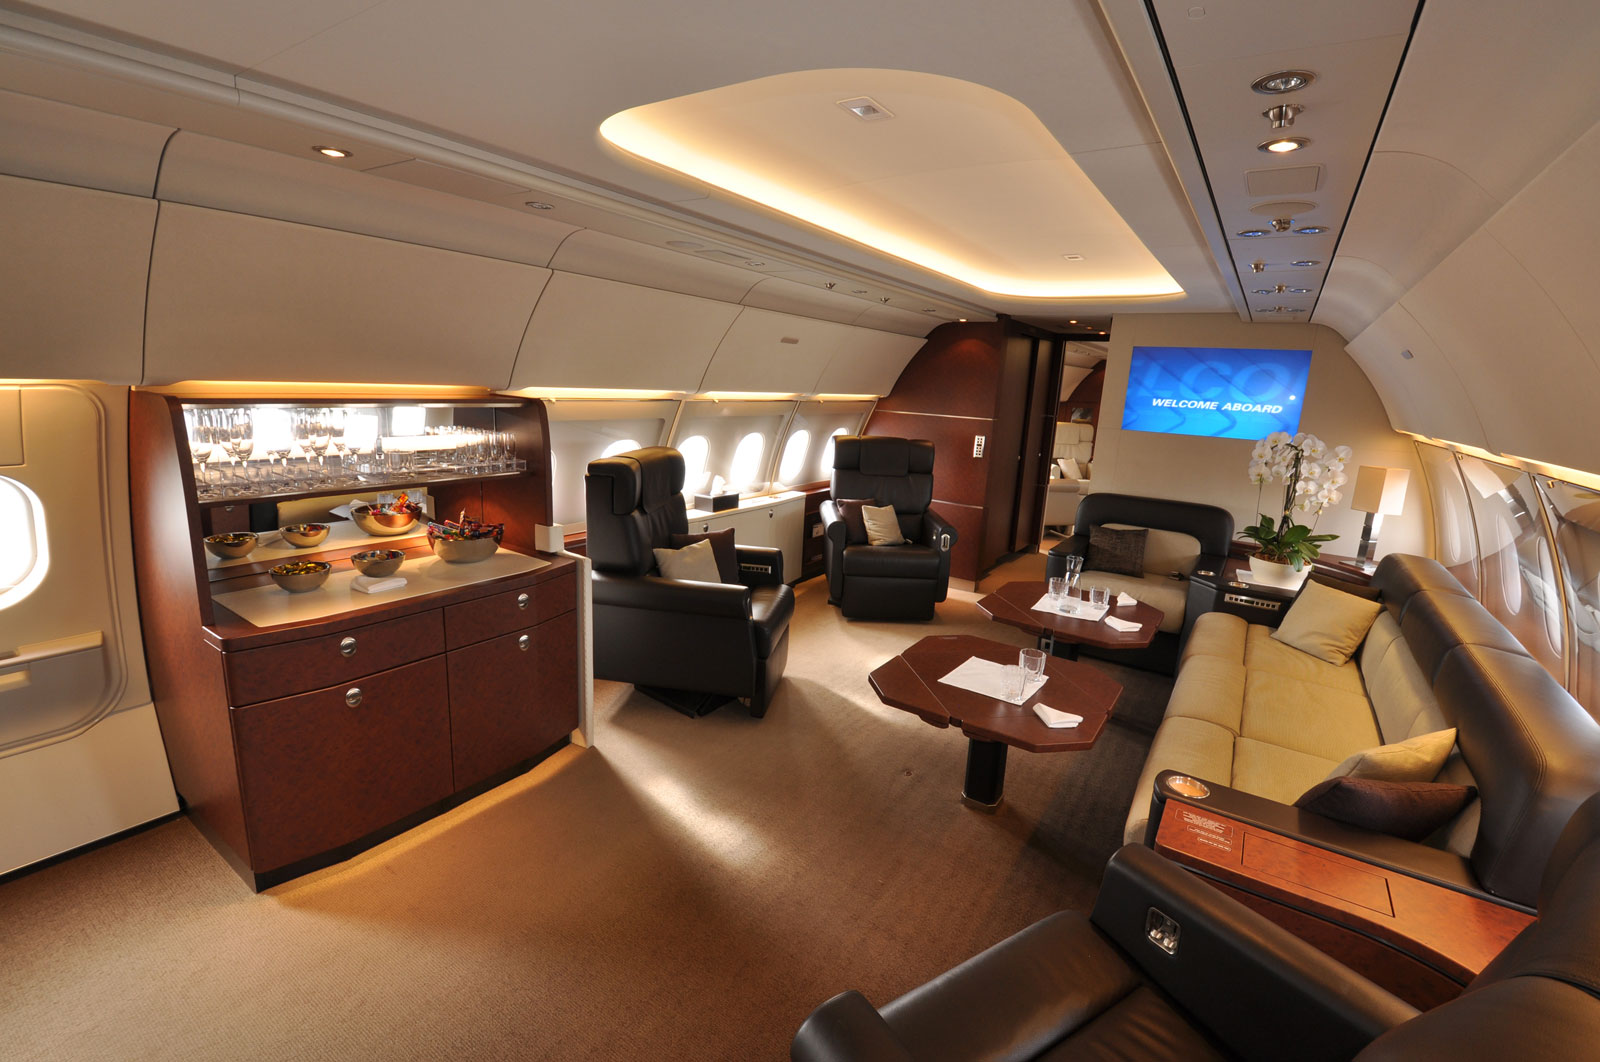 Luxury private jets bellisima for Small luxury hotels of the world wiki